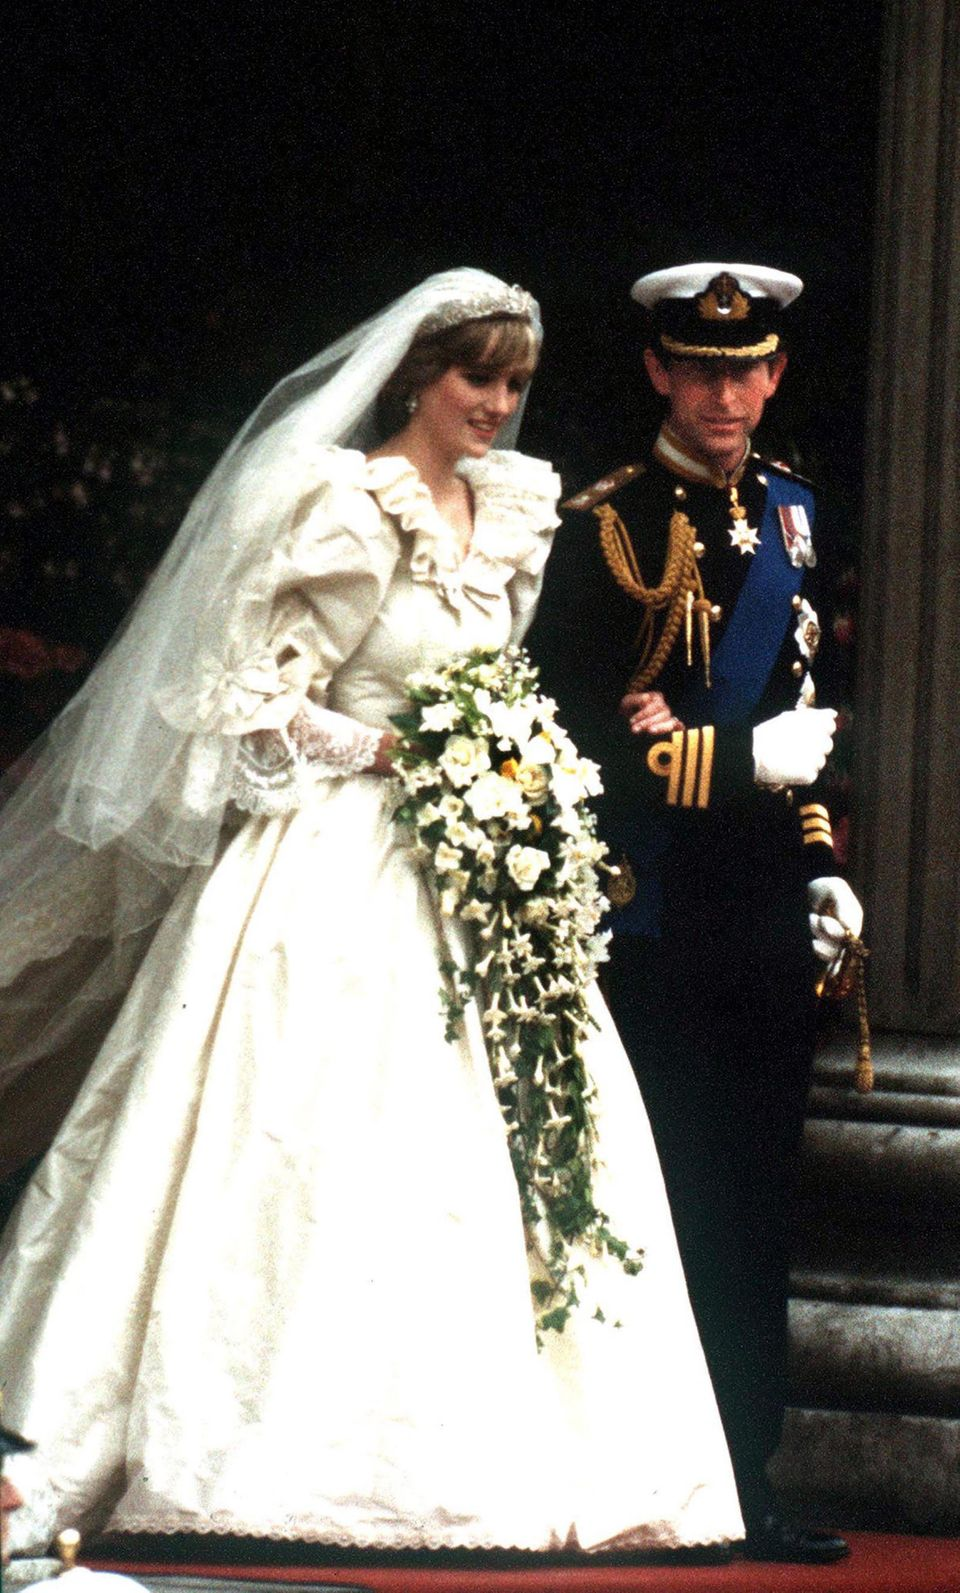 Princess Diana opted for a dress designed by the Emanuels, while Prince Charles opted to wear military